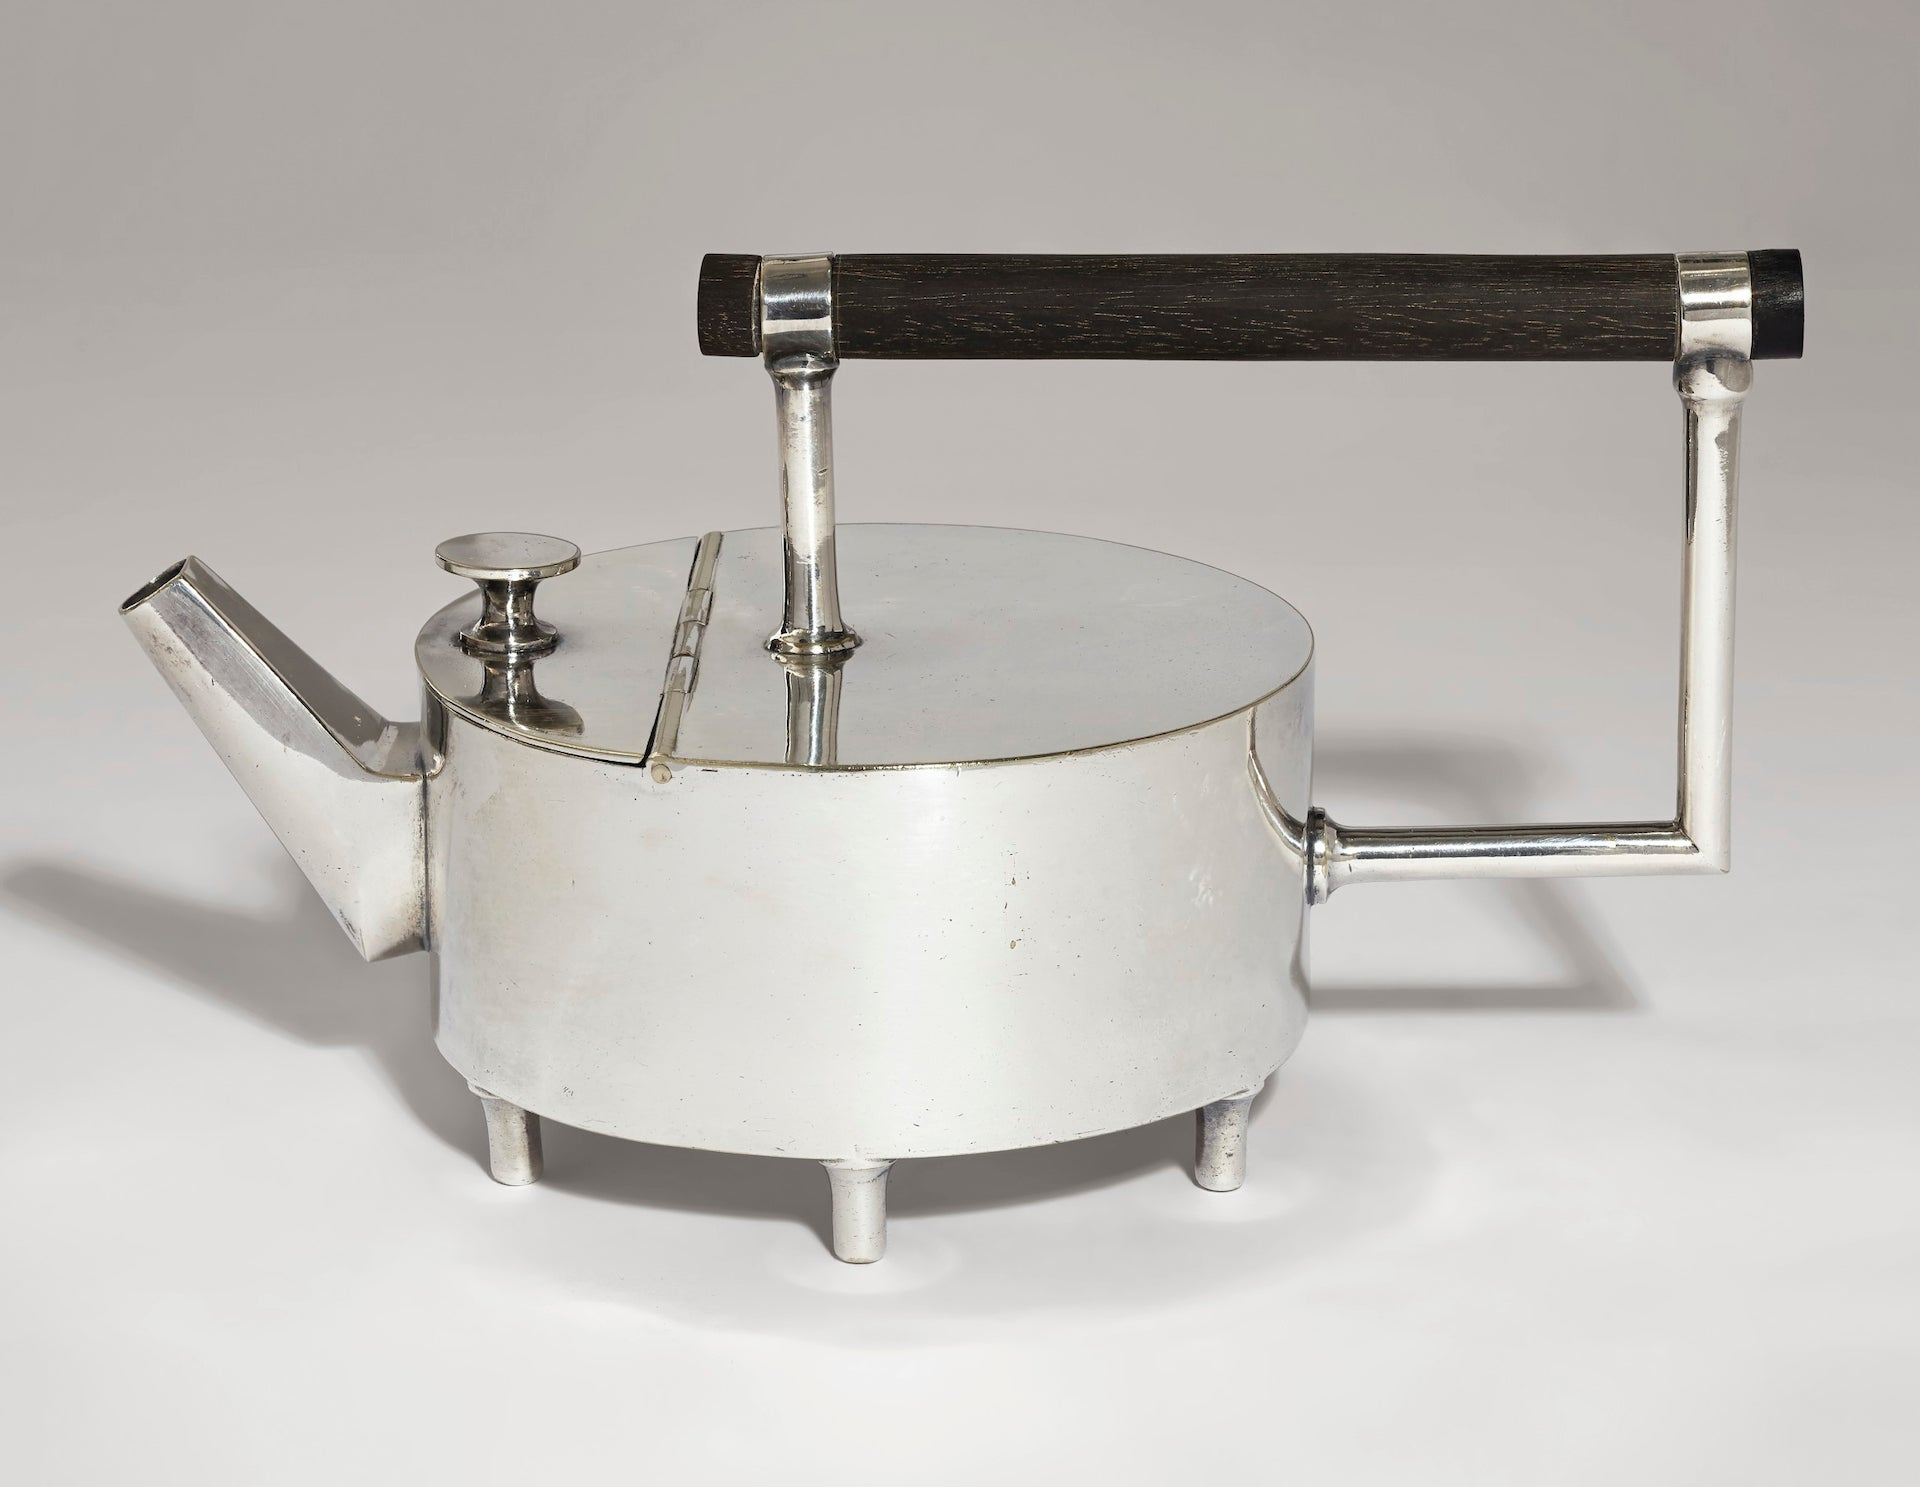 Rare Teapot by Christopher Dresser, c. 1879. Sold at Christie's New York in 2019 for $399,000. Photo © Christie's